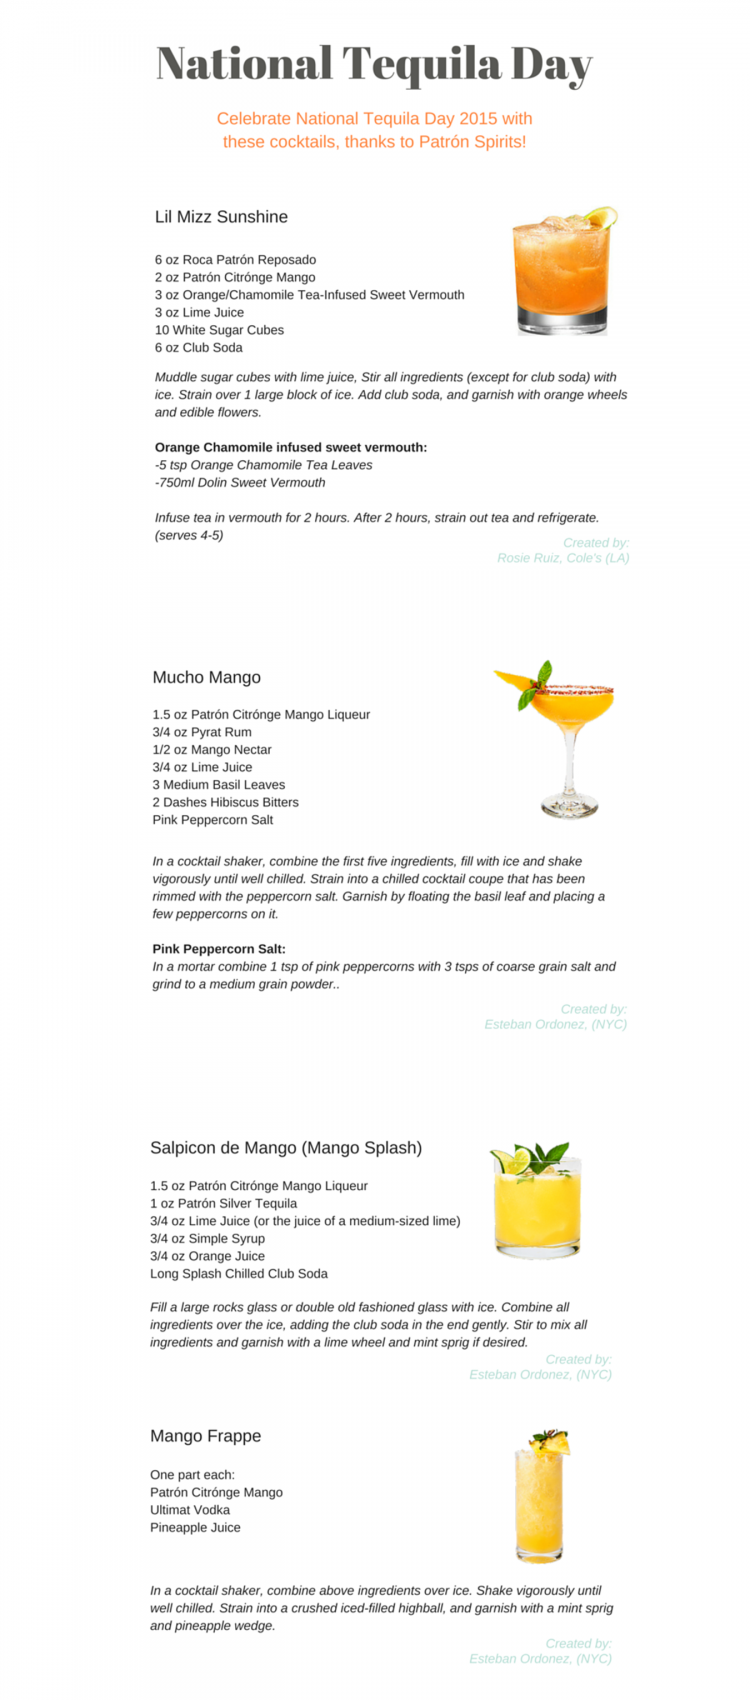 National Tequila Day 2015 - Recipes